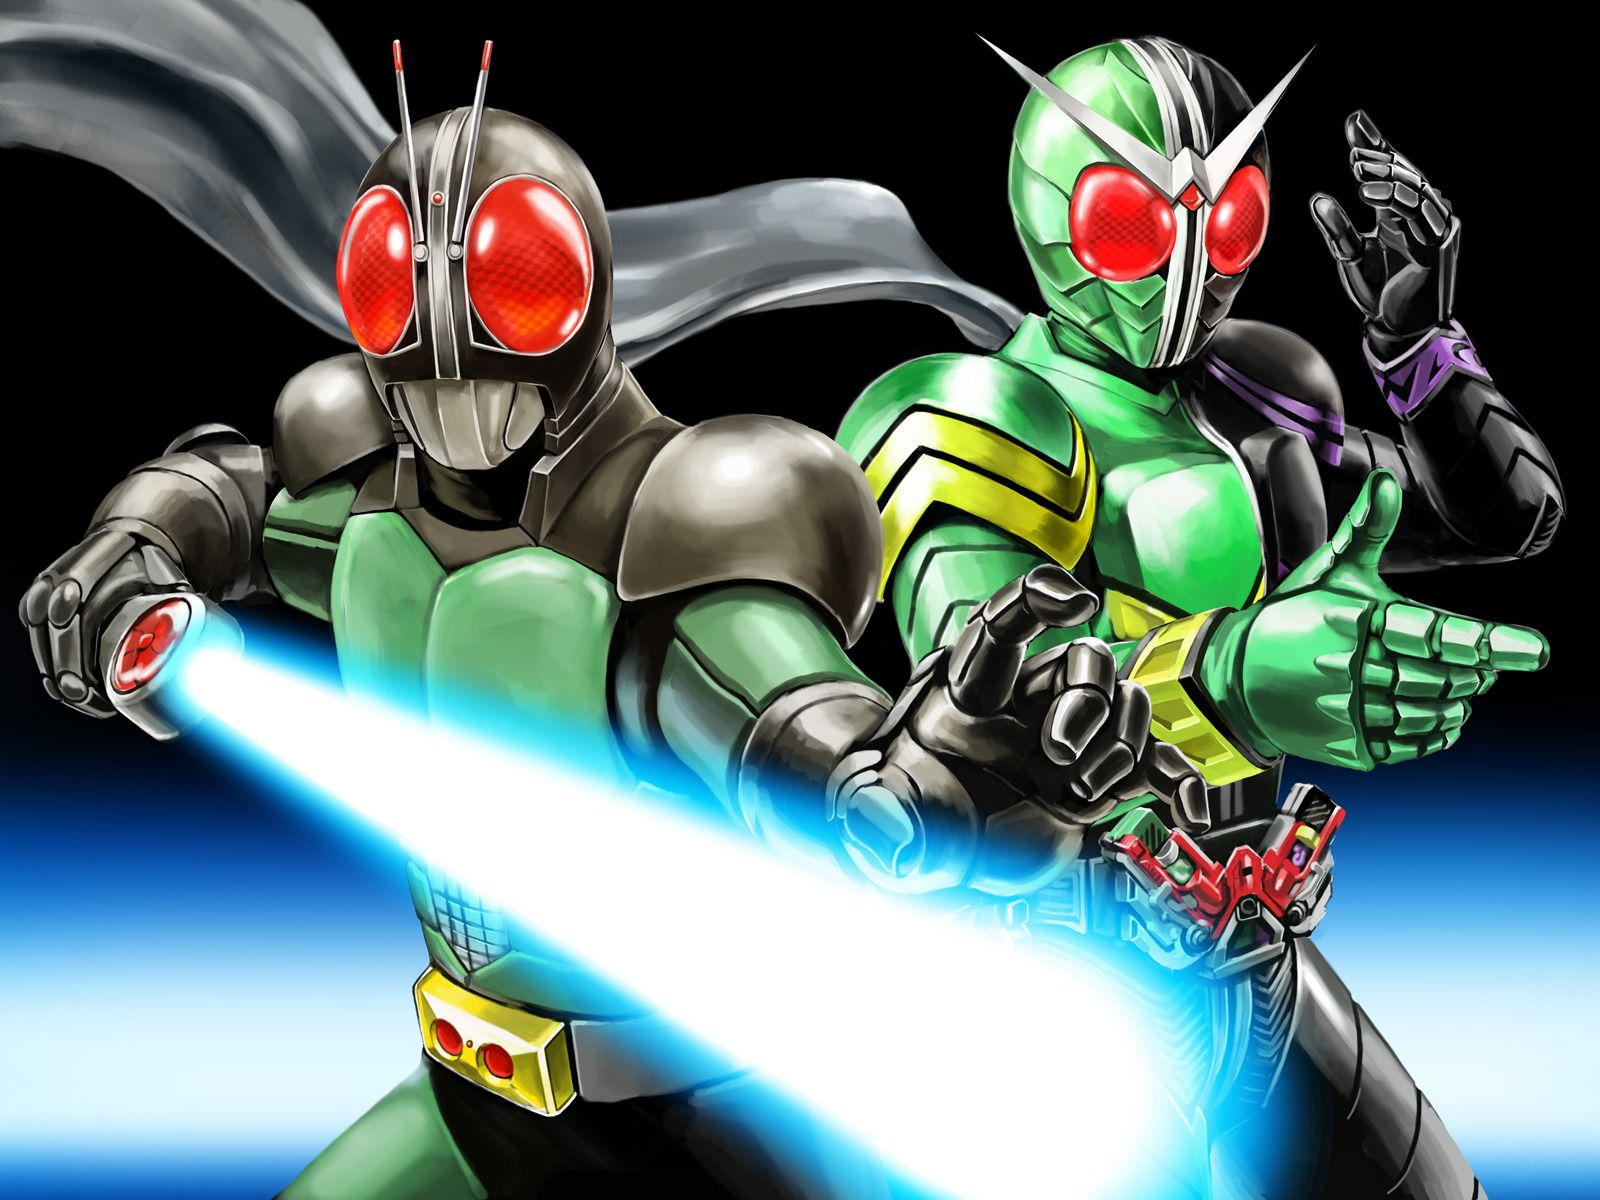 Kamen rider wallpaper wallpaper free download 16001200 kamen rider kamen rider wallpaper wallpaper free download 16001200 kamen rider wallpapers 33 wallpapers adorable wallpapers voltagebd Images